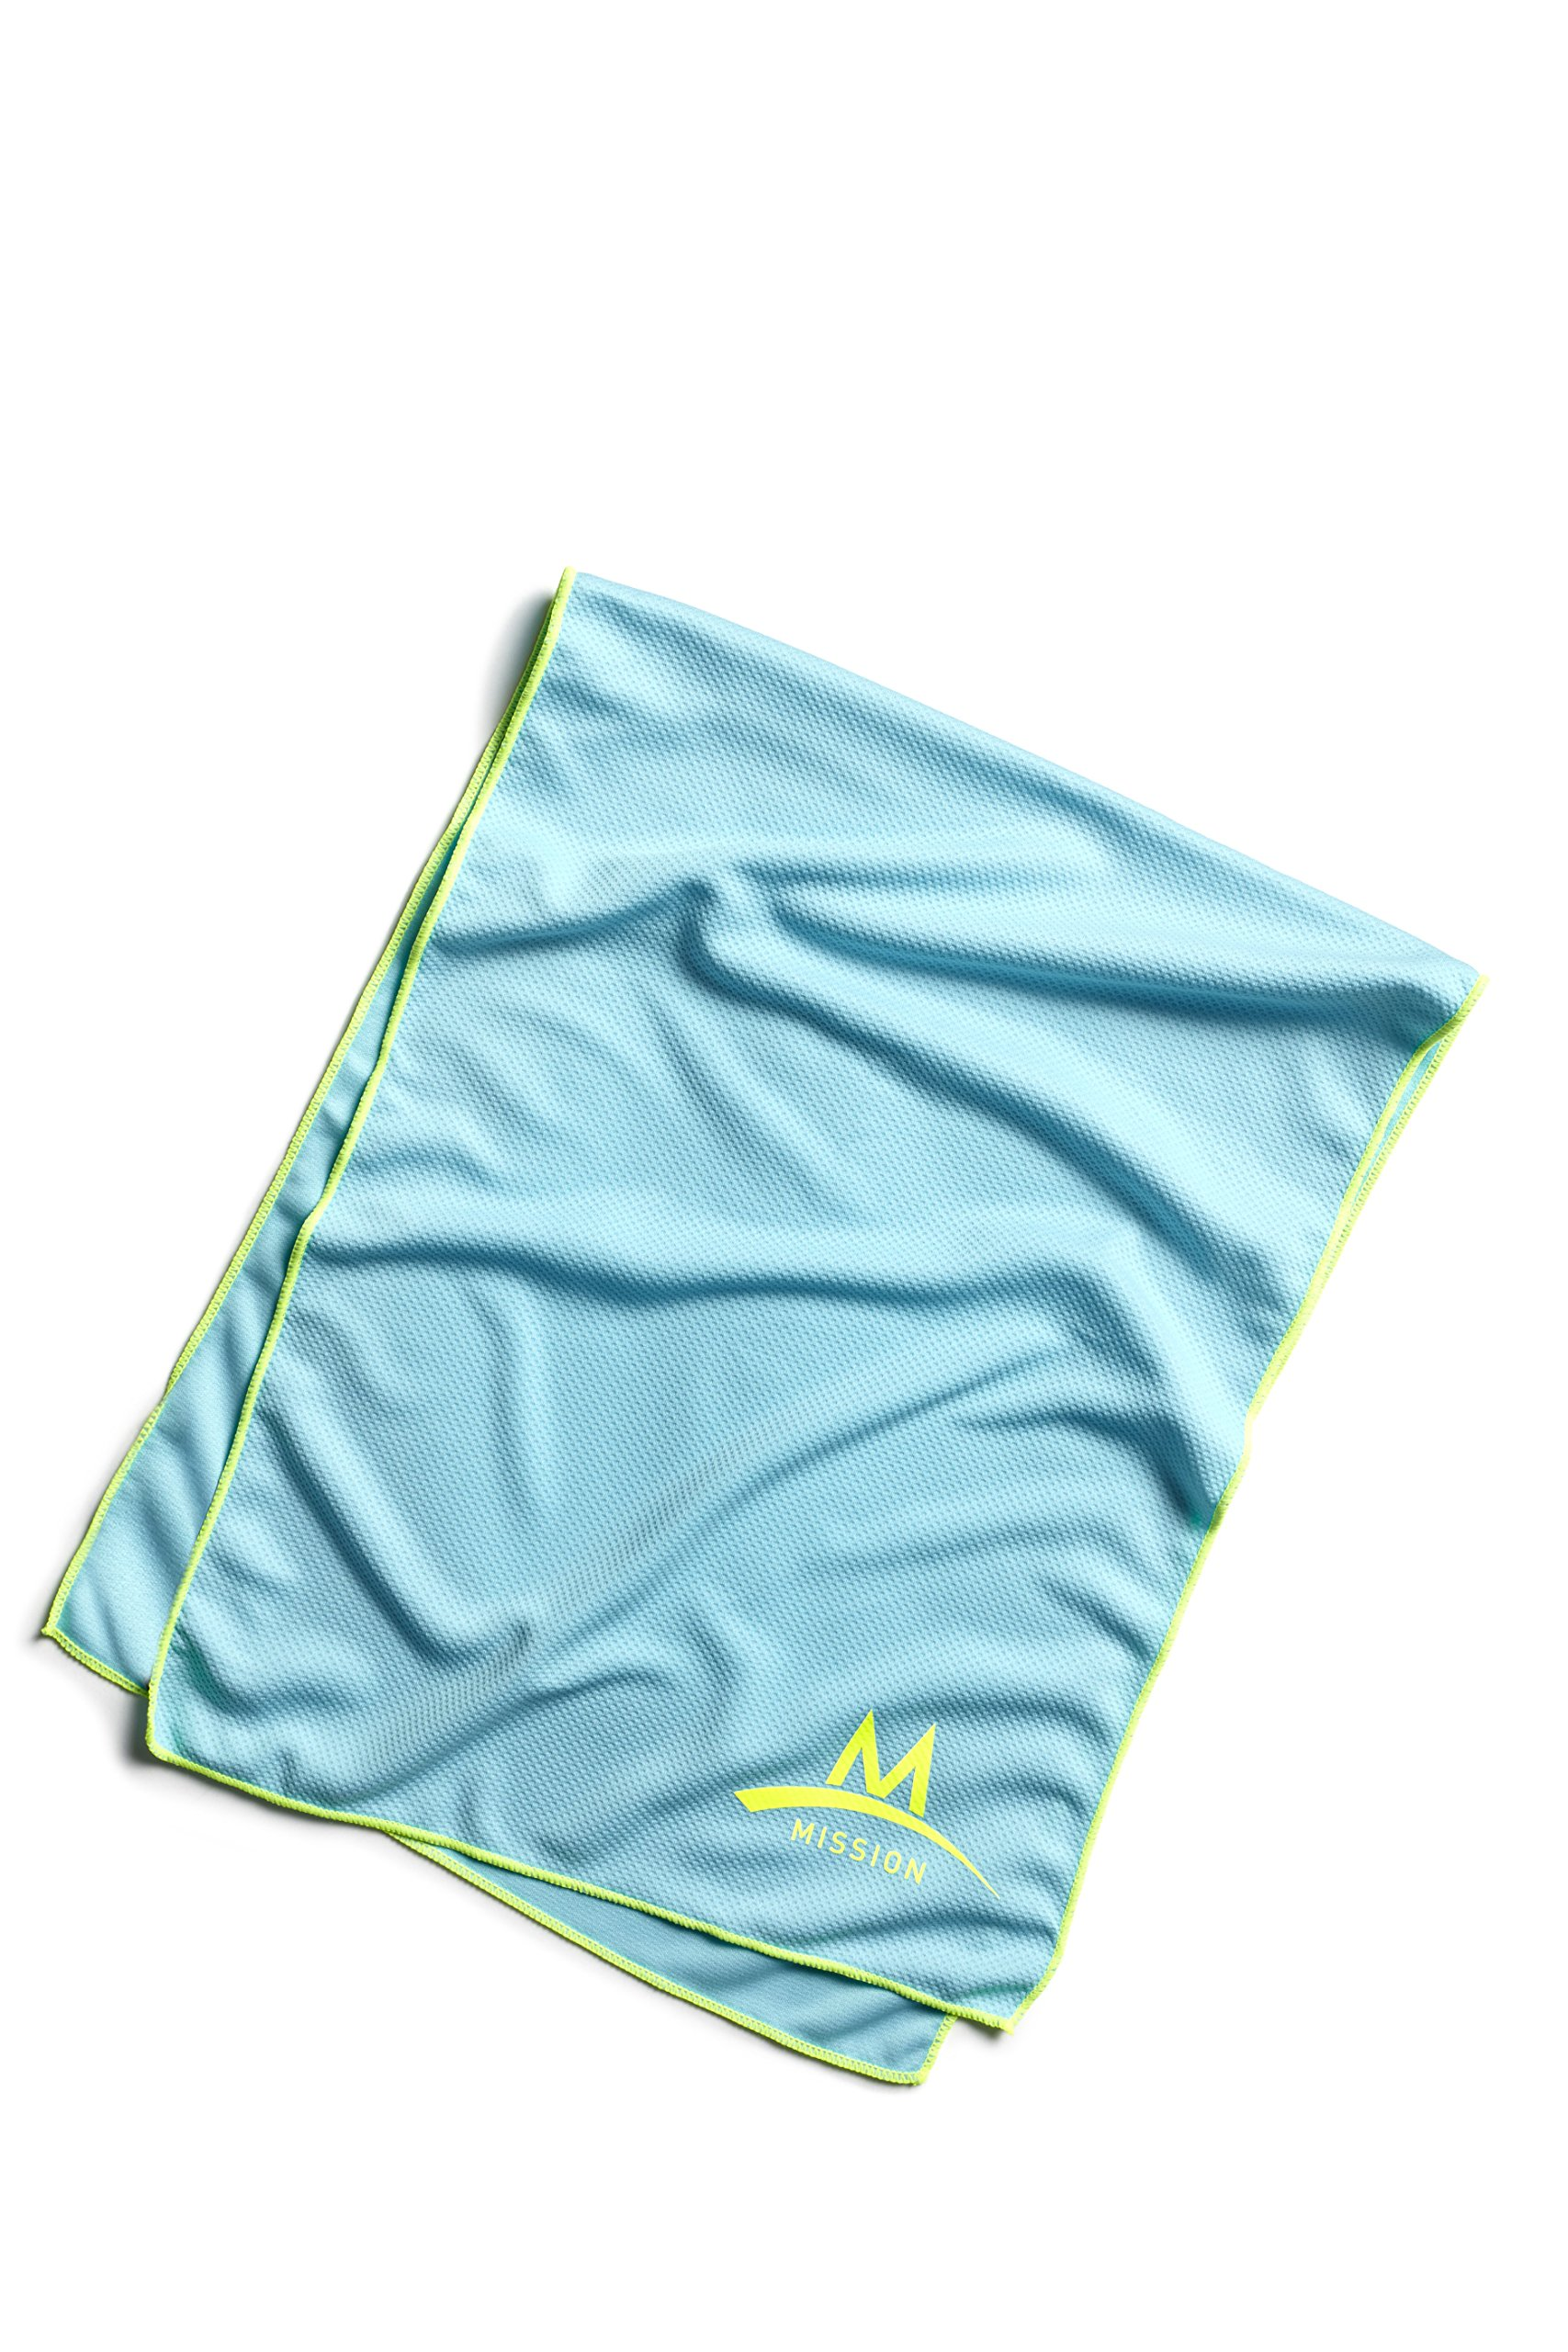 Mission Enduracool Techknit Cooling Towel, Large, Blue Fish by MISSION (Image #1)